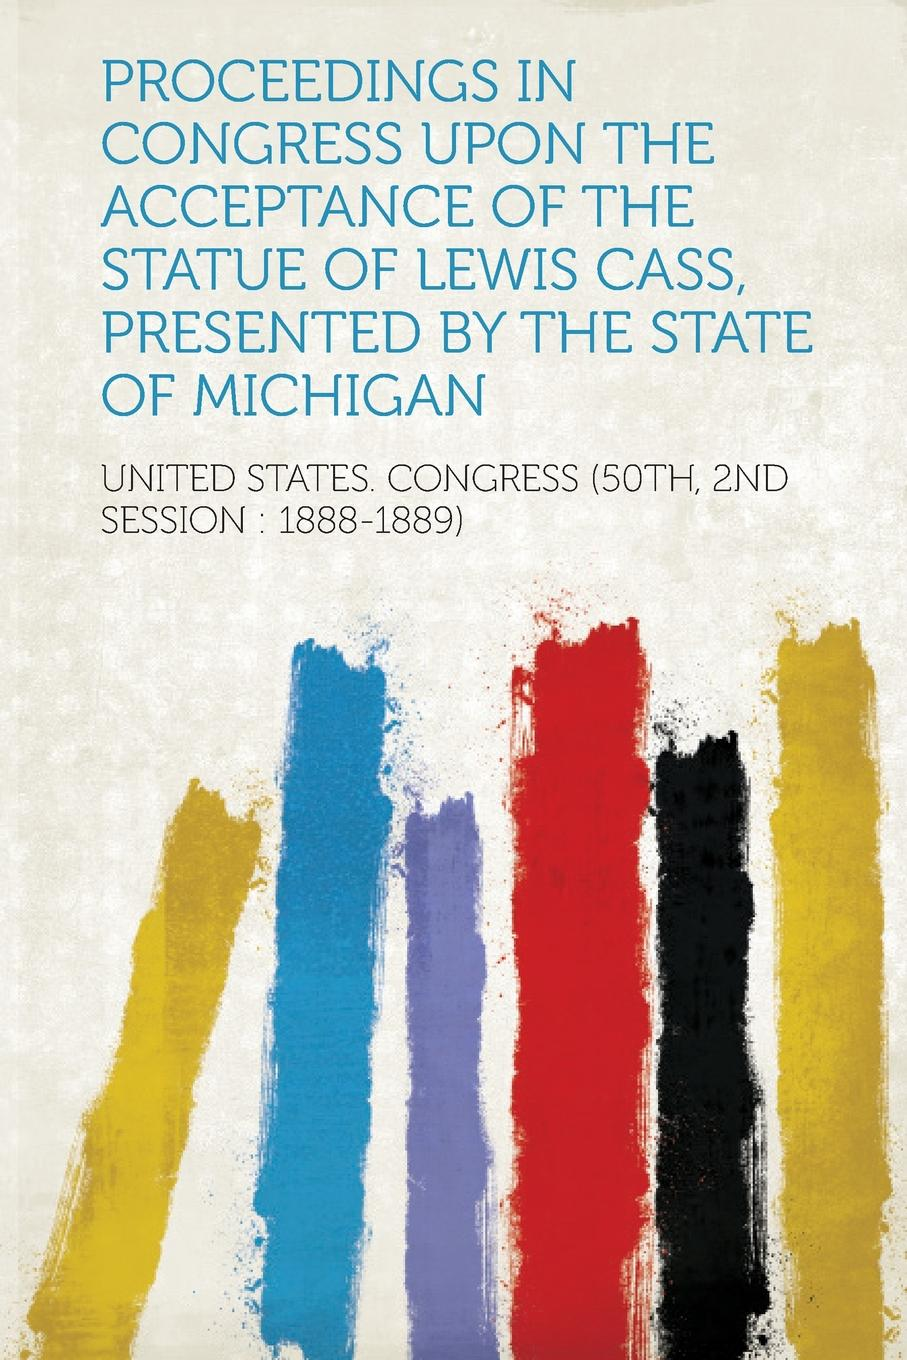 Proceedings in Congress Upon the Acceptance of the Statue of Lewis Cass, Presented by the State of Michigan